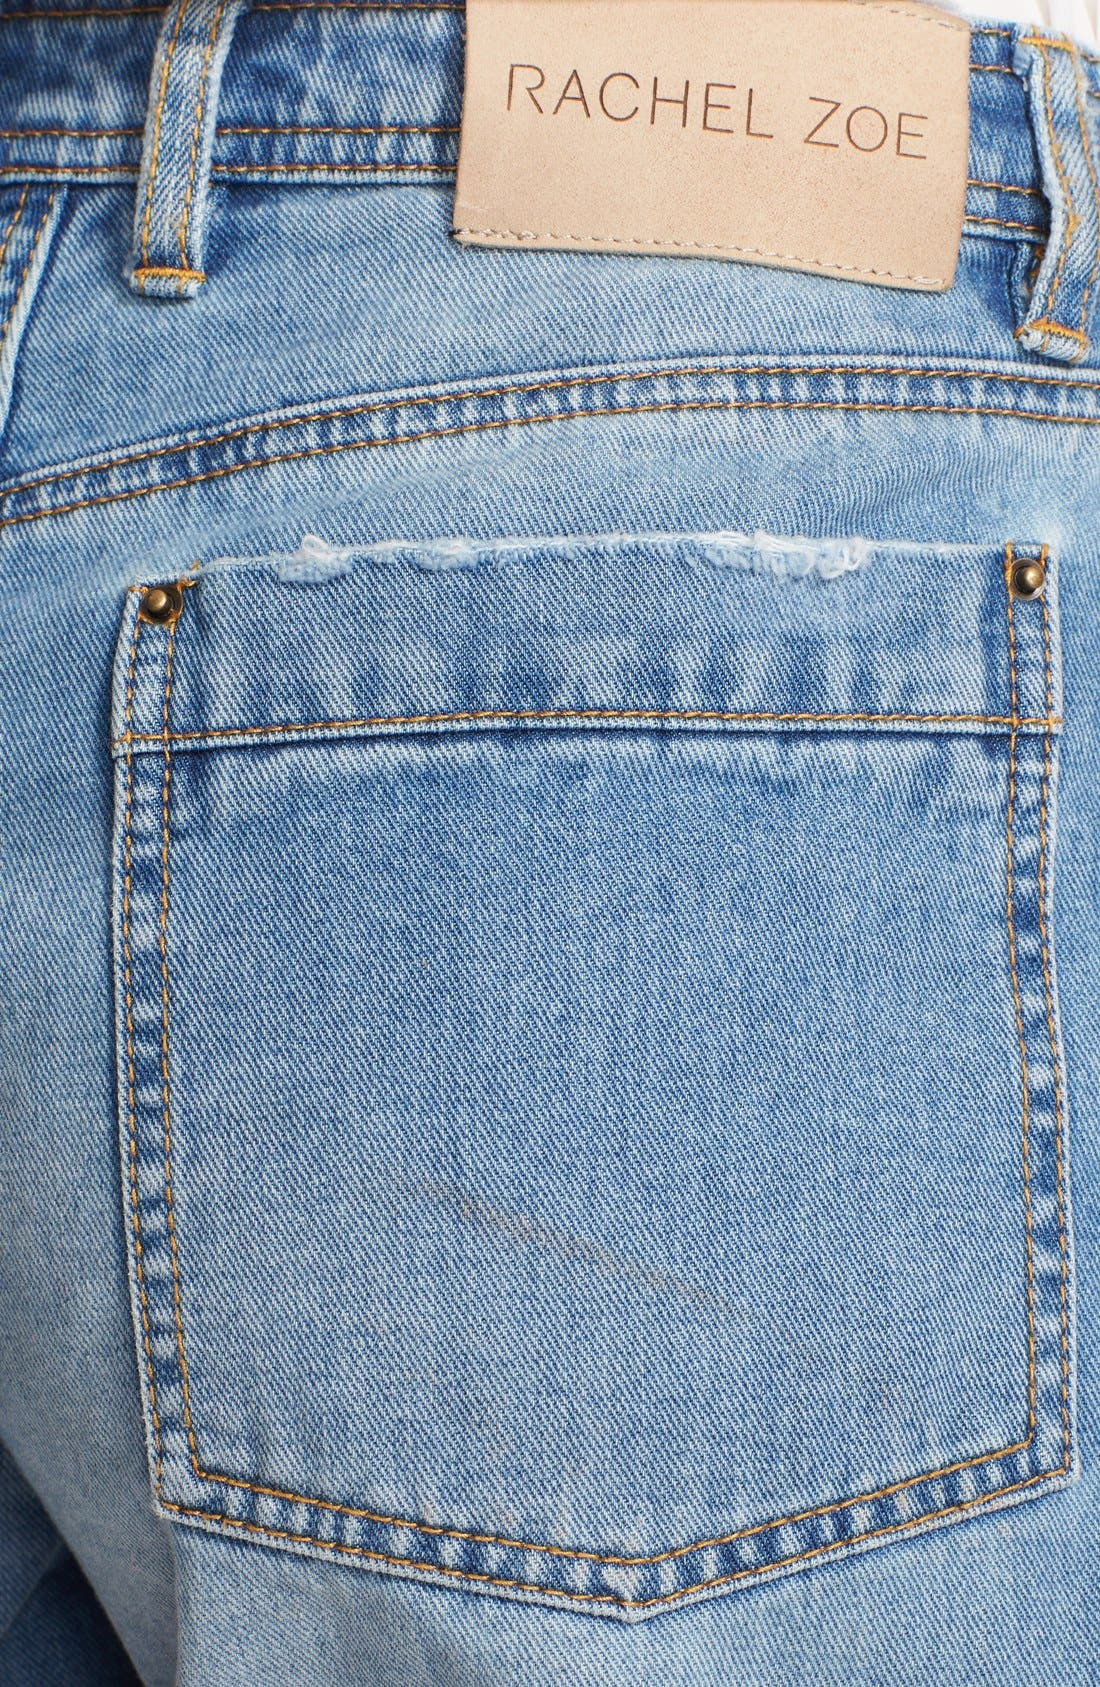 Alternate Image 3  - Rachel Zoe 'Jocelyn' Destroyed Boyfriend Jean Shorts